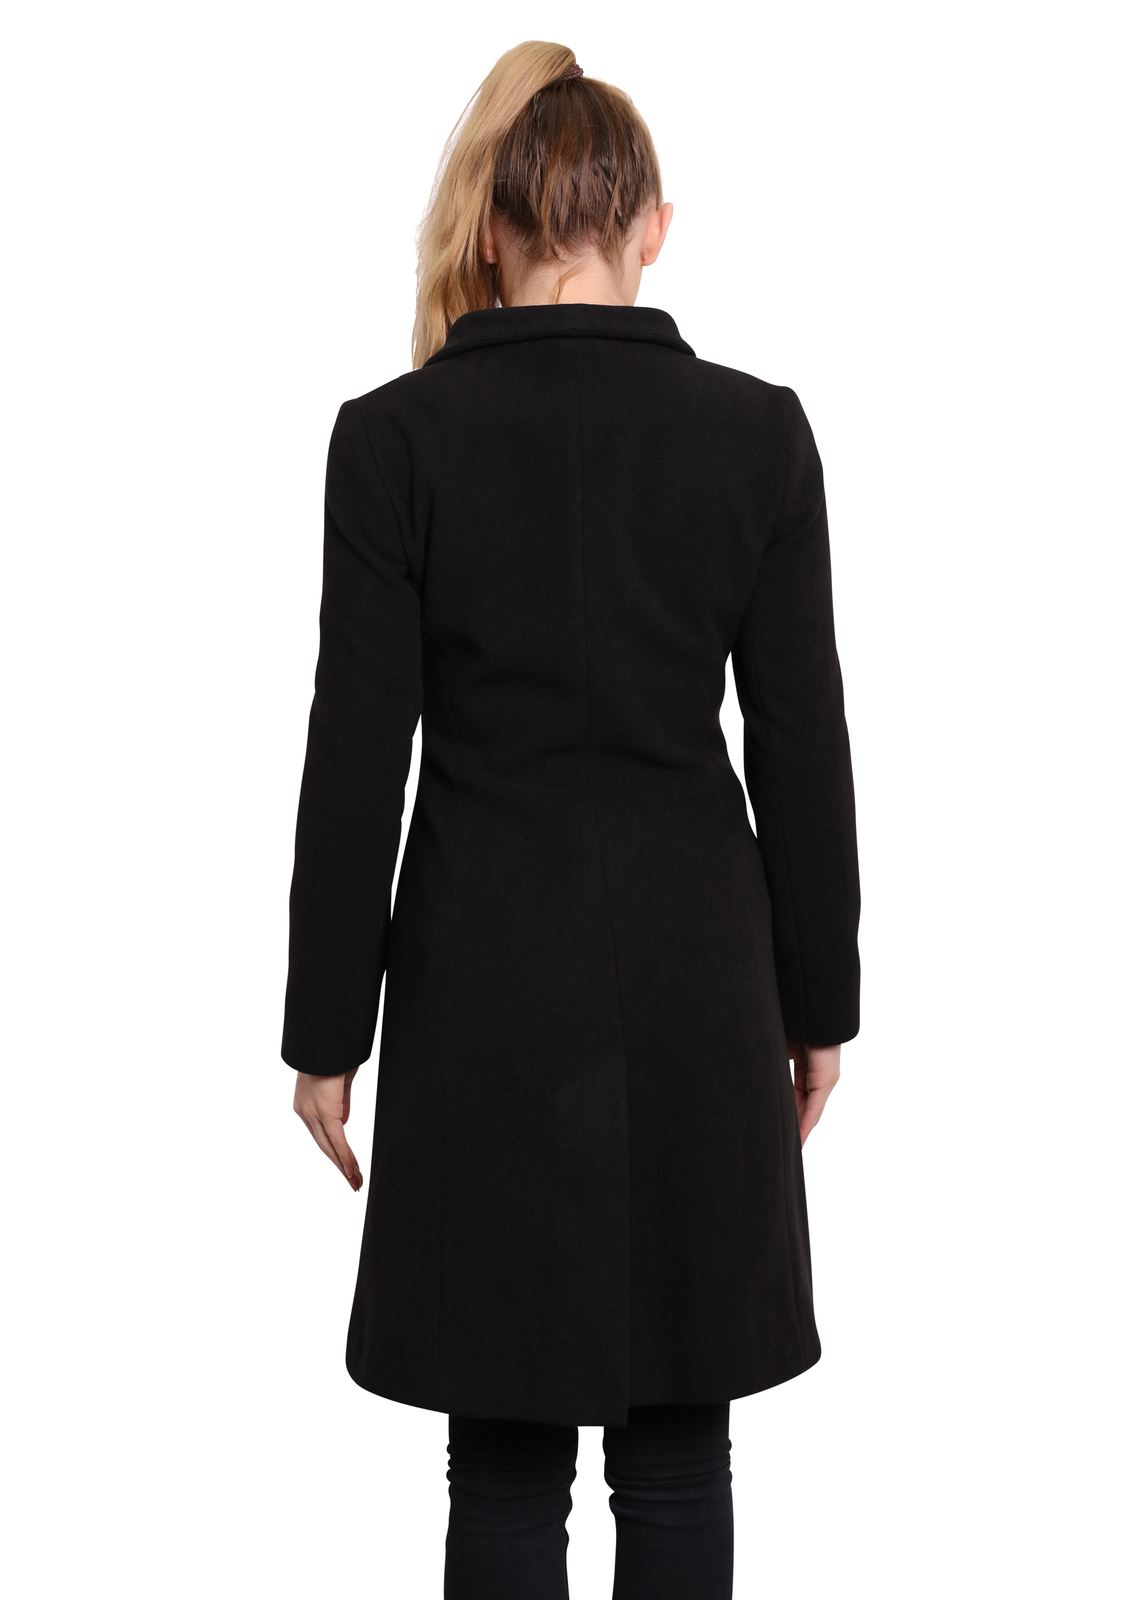 De-La-Creme-Womens-Funnel-Neck-Wool-amp-Cashmere-Blend-Keep-It-Simple-Coat thumbnail 5